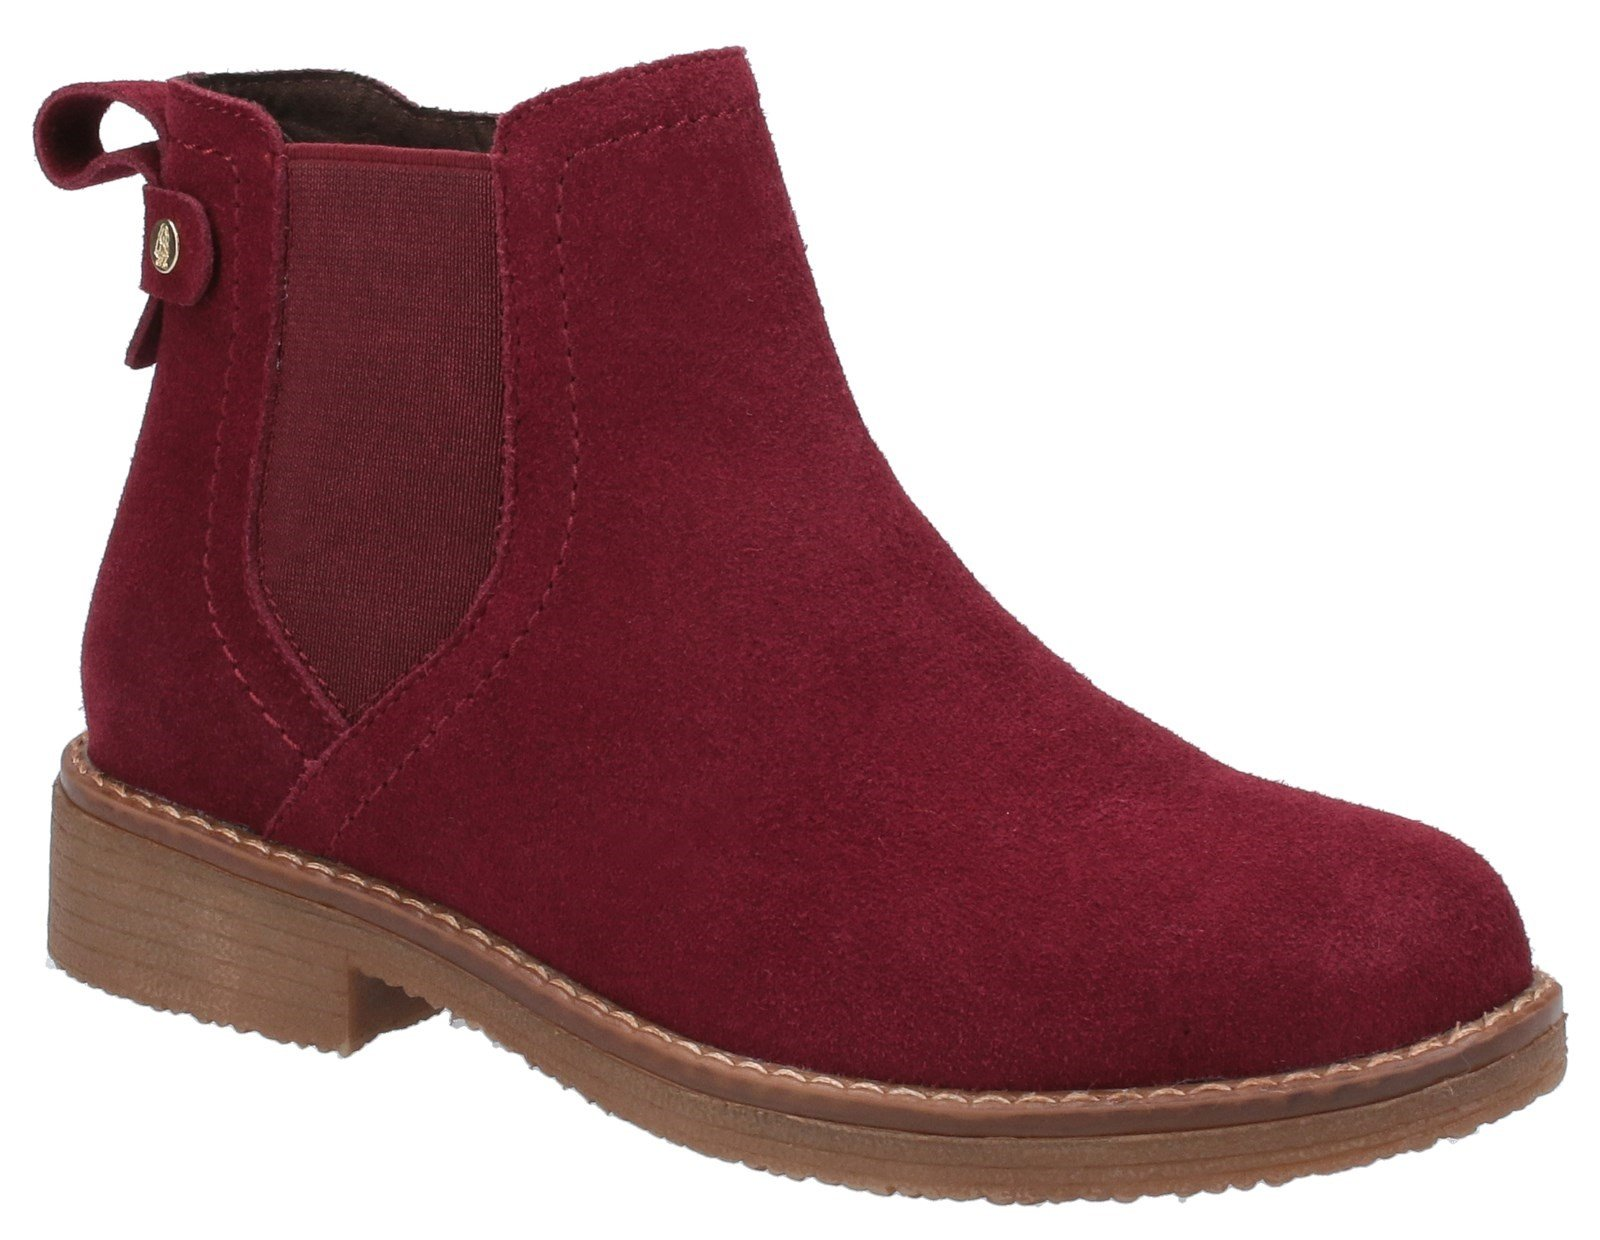 Hush Puppies Women's Maddy Ladies Ankle Boots Various Colours 31214 - Bordo 3